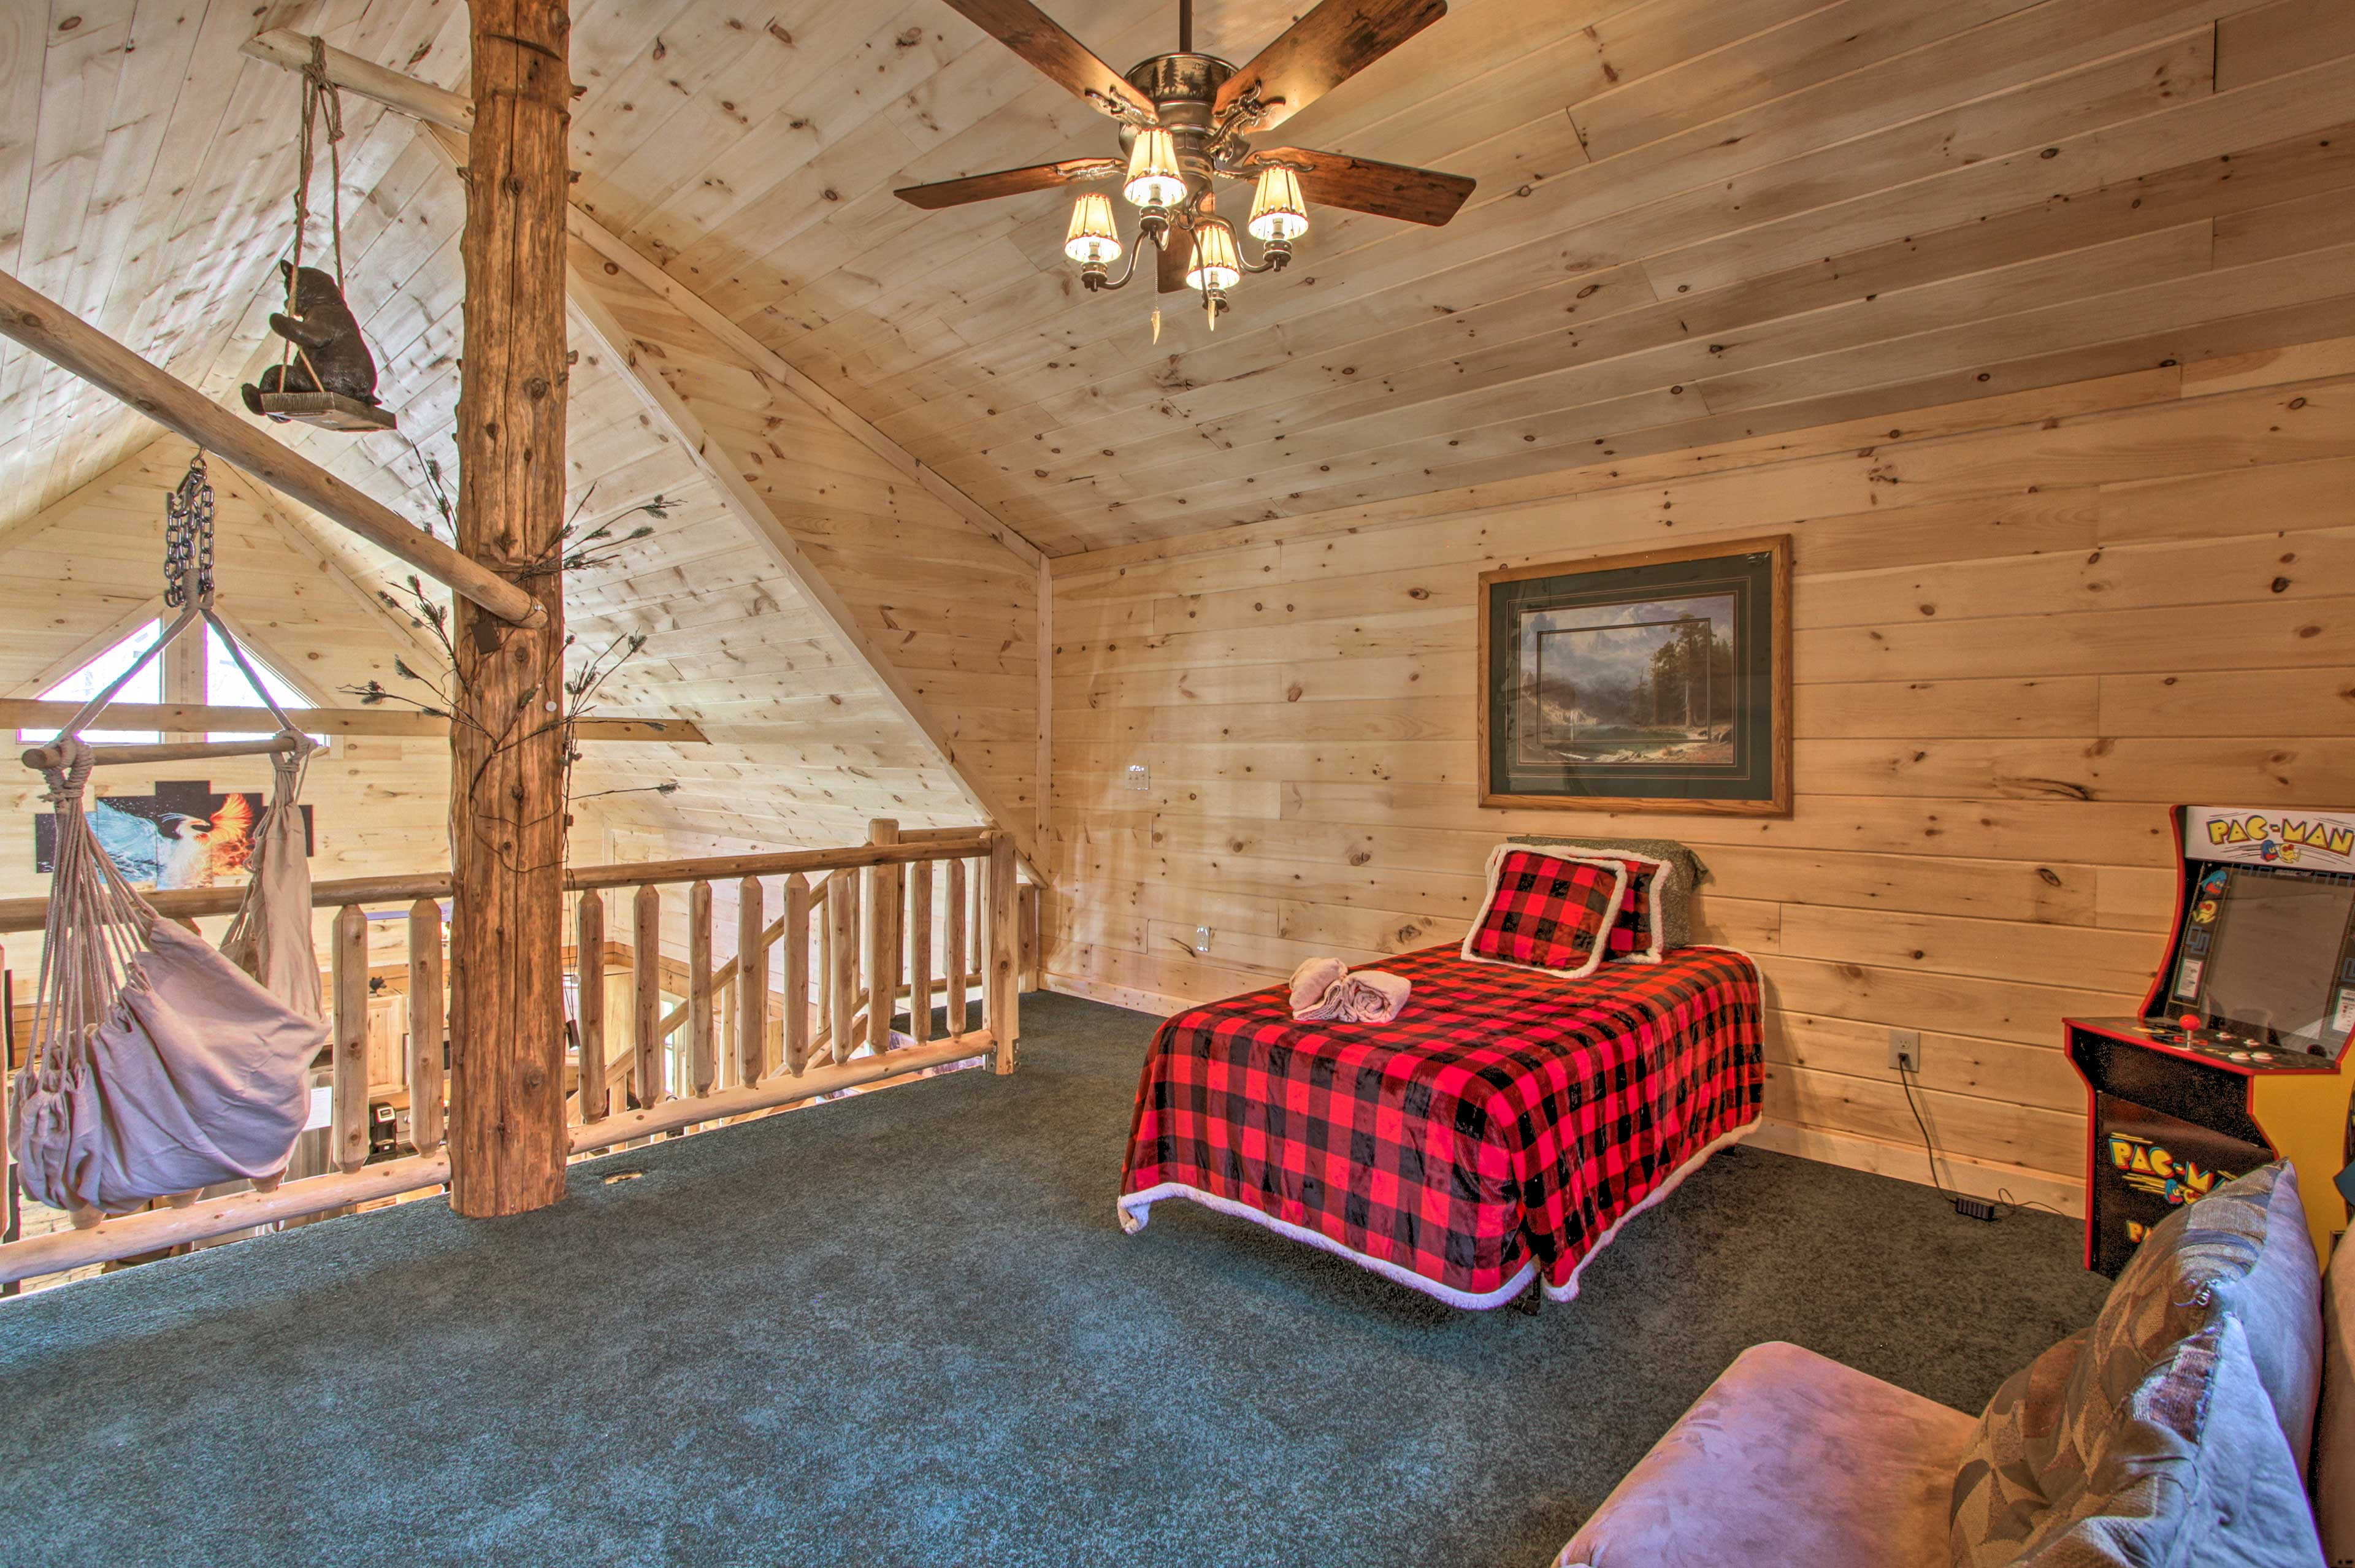 Curl up in the twin bed or take a nap in the hammock in the loft.